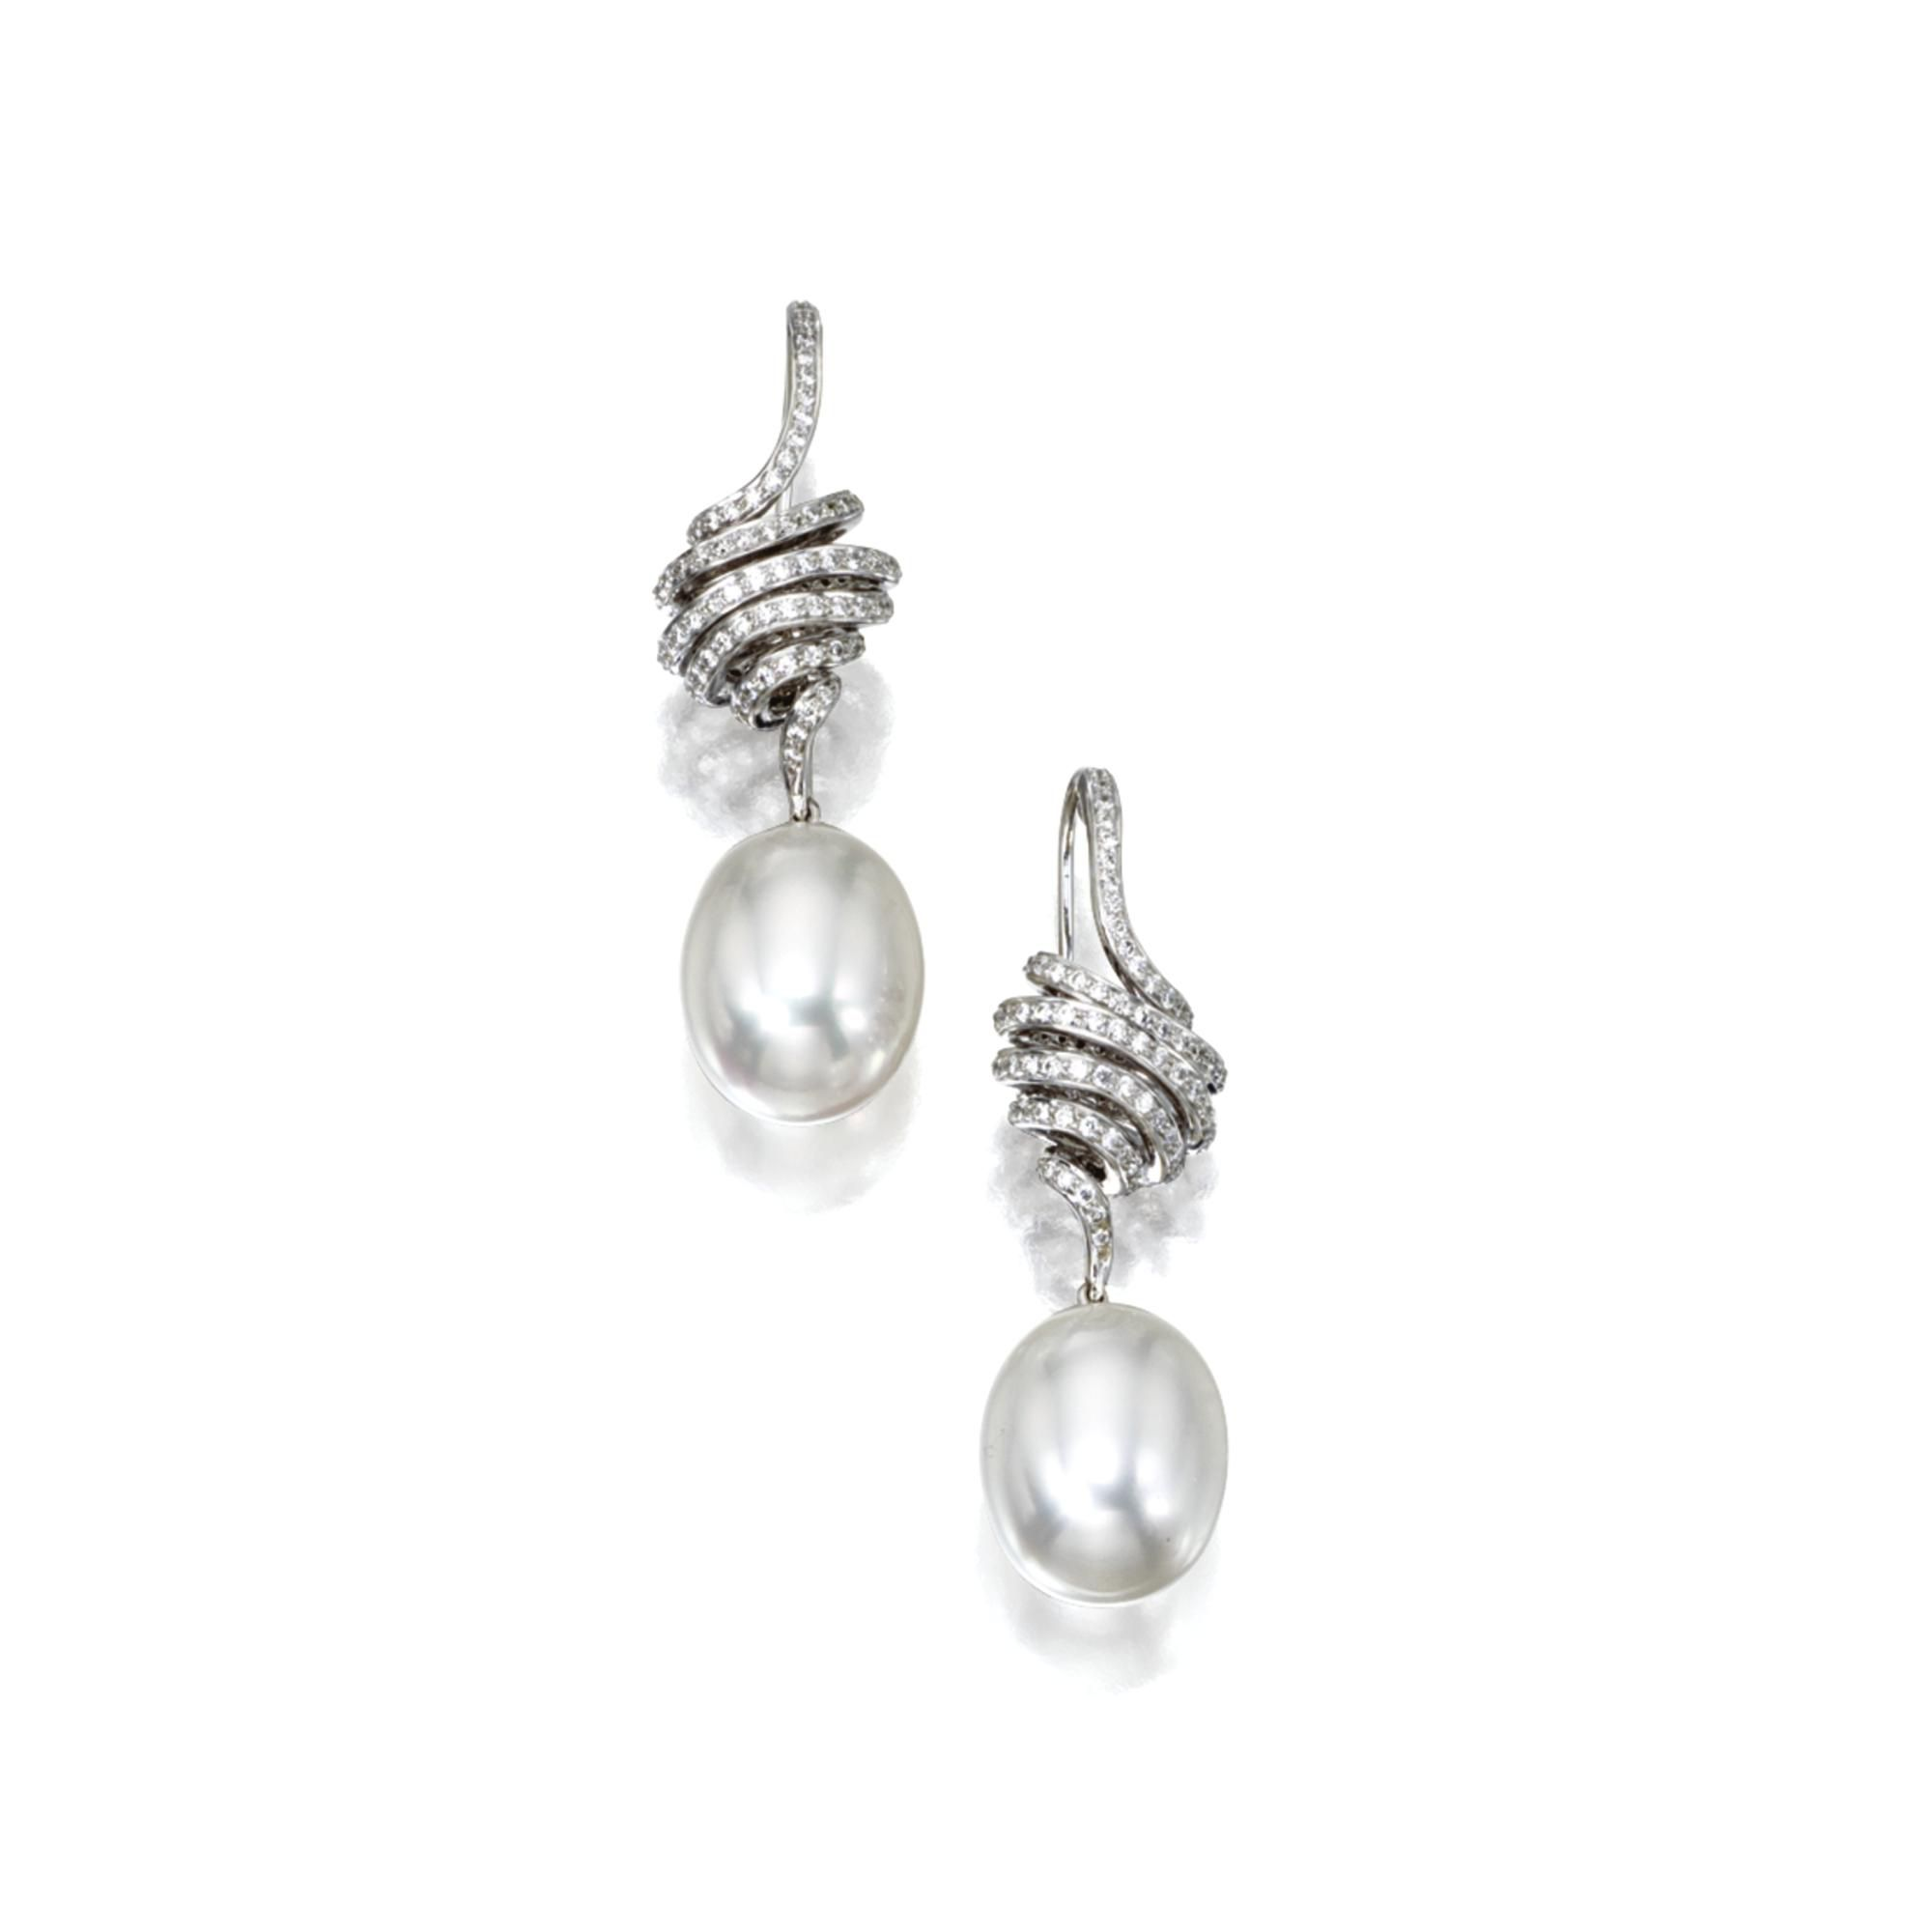 PAIR OF CULTURED PEARL AND DIAMOND EARRINGS The 2 cultured pearl drops measuring…